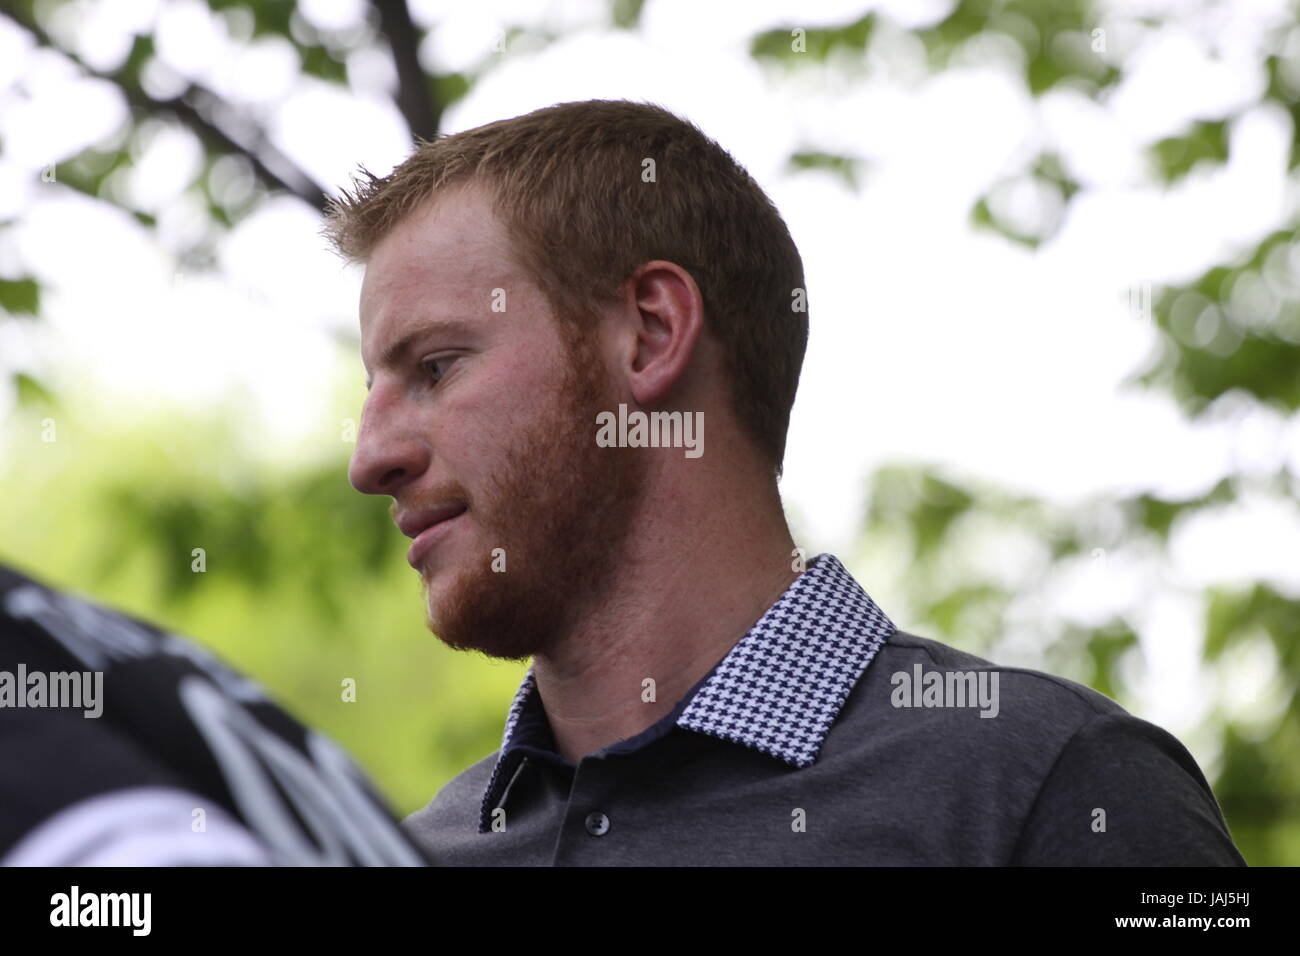 Nfl Draft Day 1 At The Ben Franklin Parkway Featuring Carson Wentz